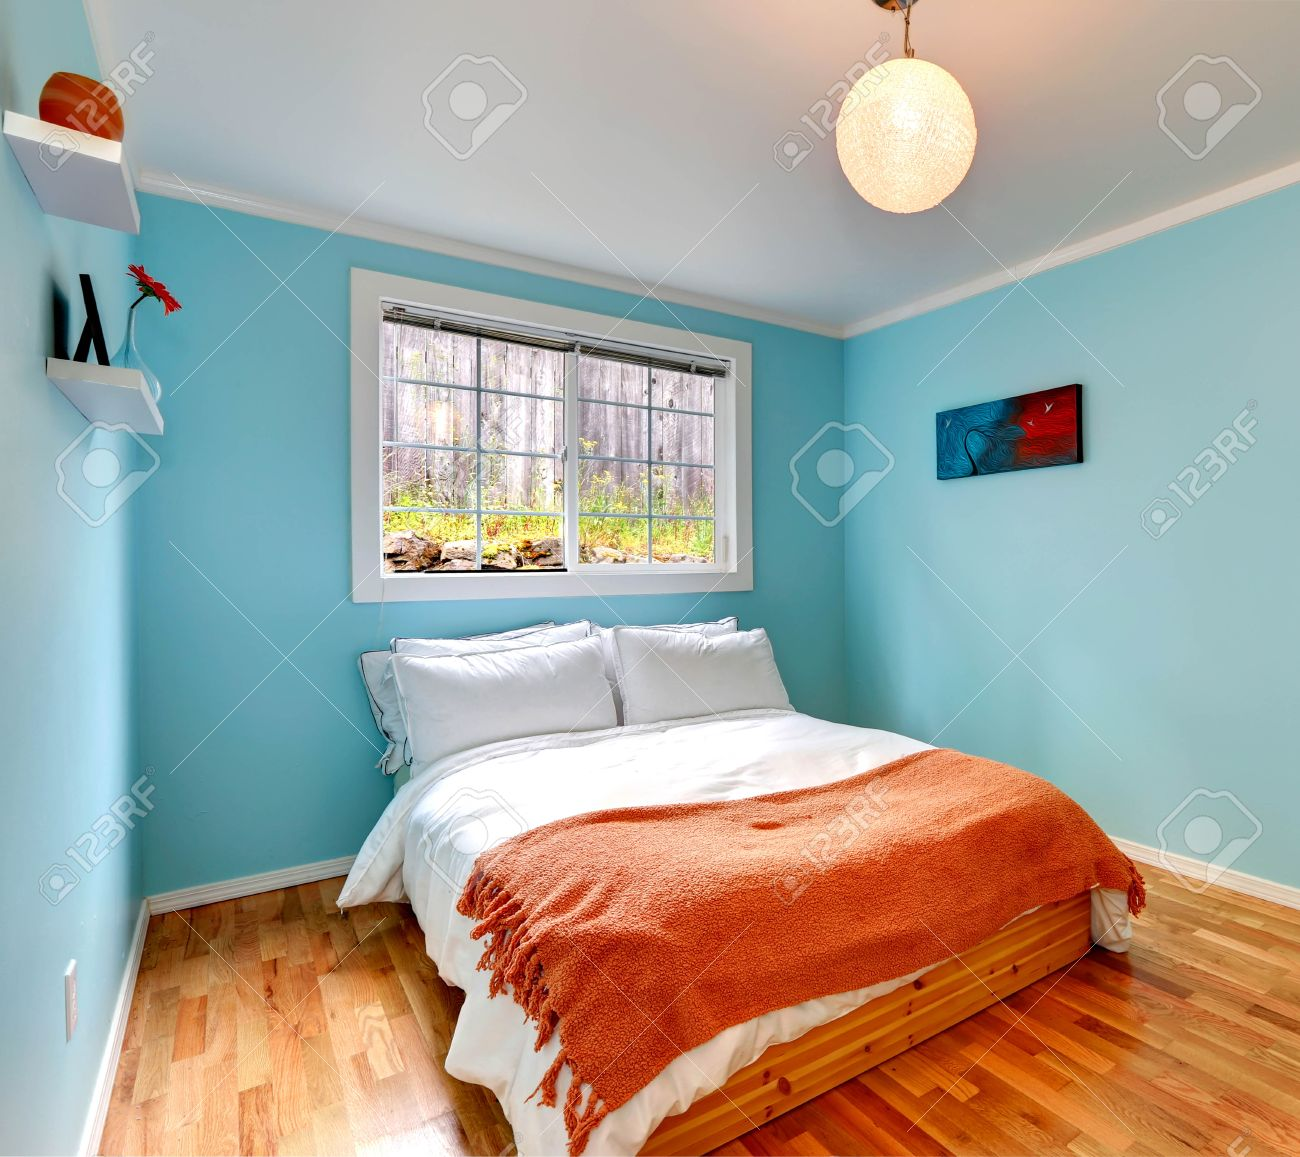 Cozy Bedroom In Light Blue Color With Hardwood Floor And Wooden Stock Photo Picture And Royalty Free Image Image 34826065